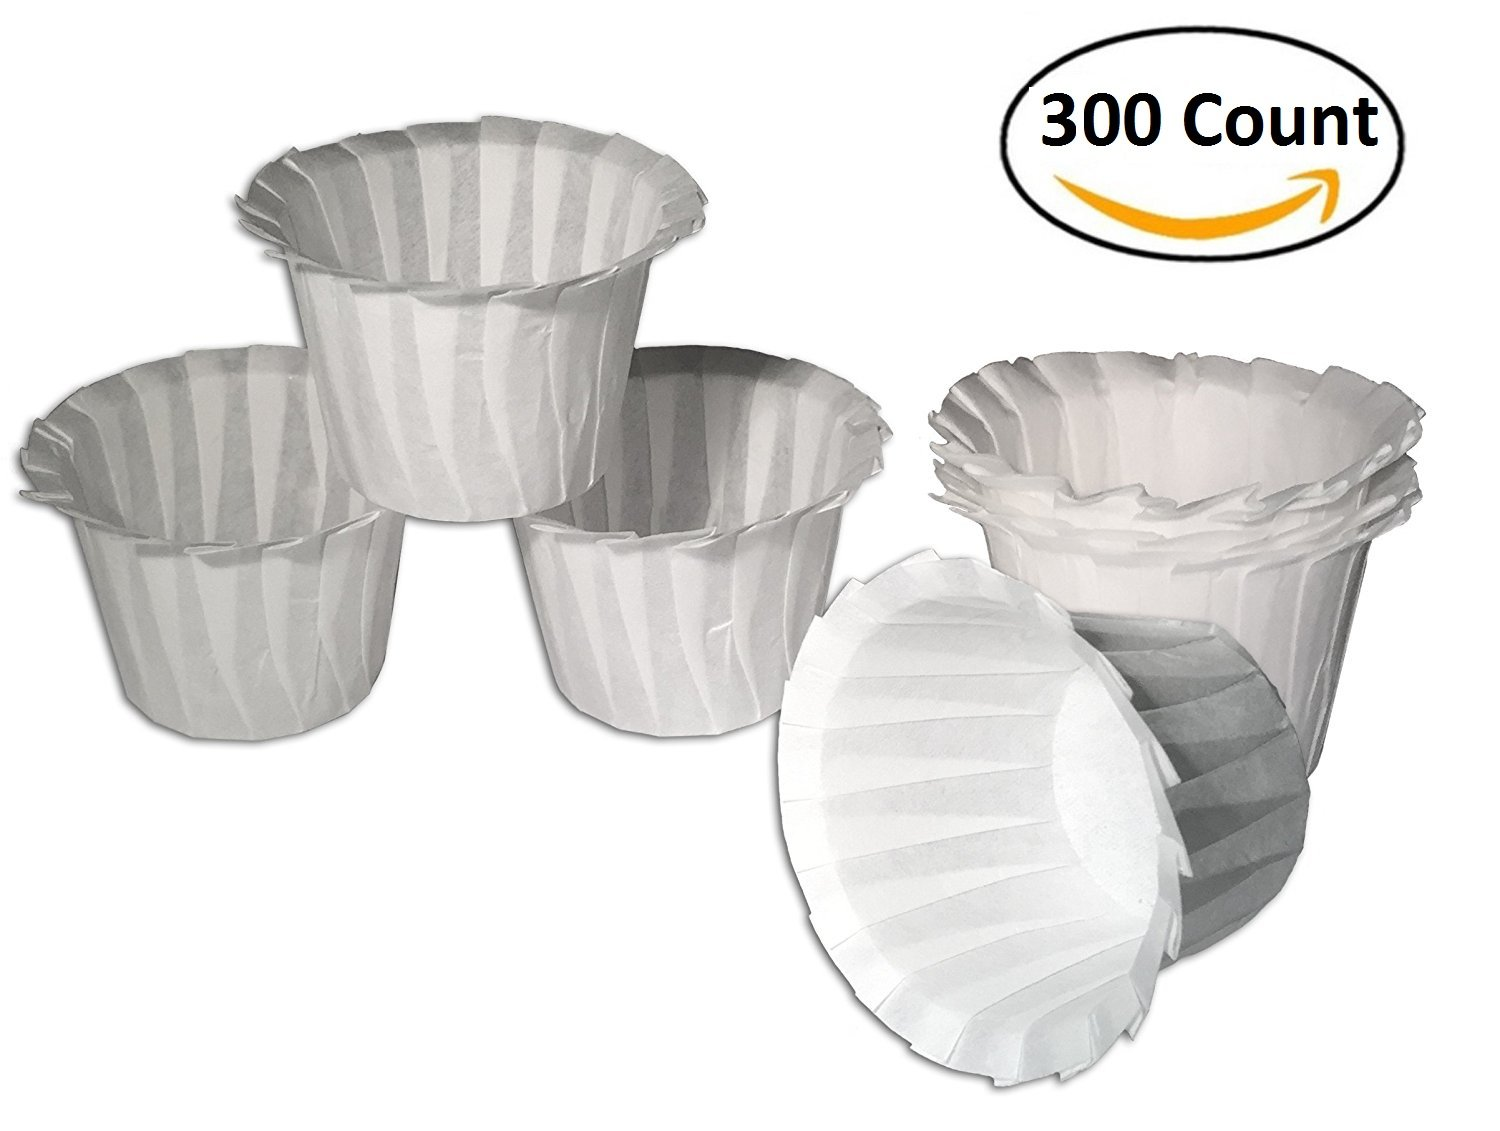 Fill N Save Universal Optional Paper Filters for Reusable K Cups for Keurig Brewers (300 Count)